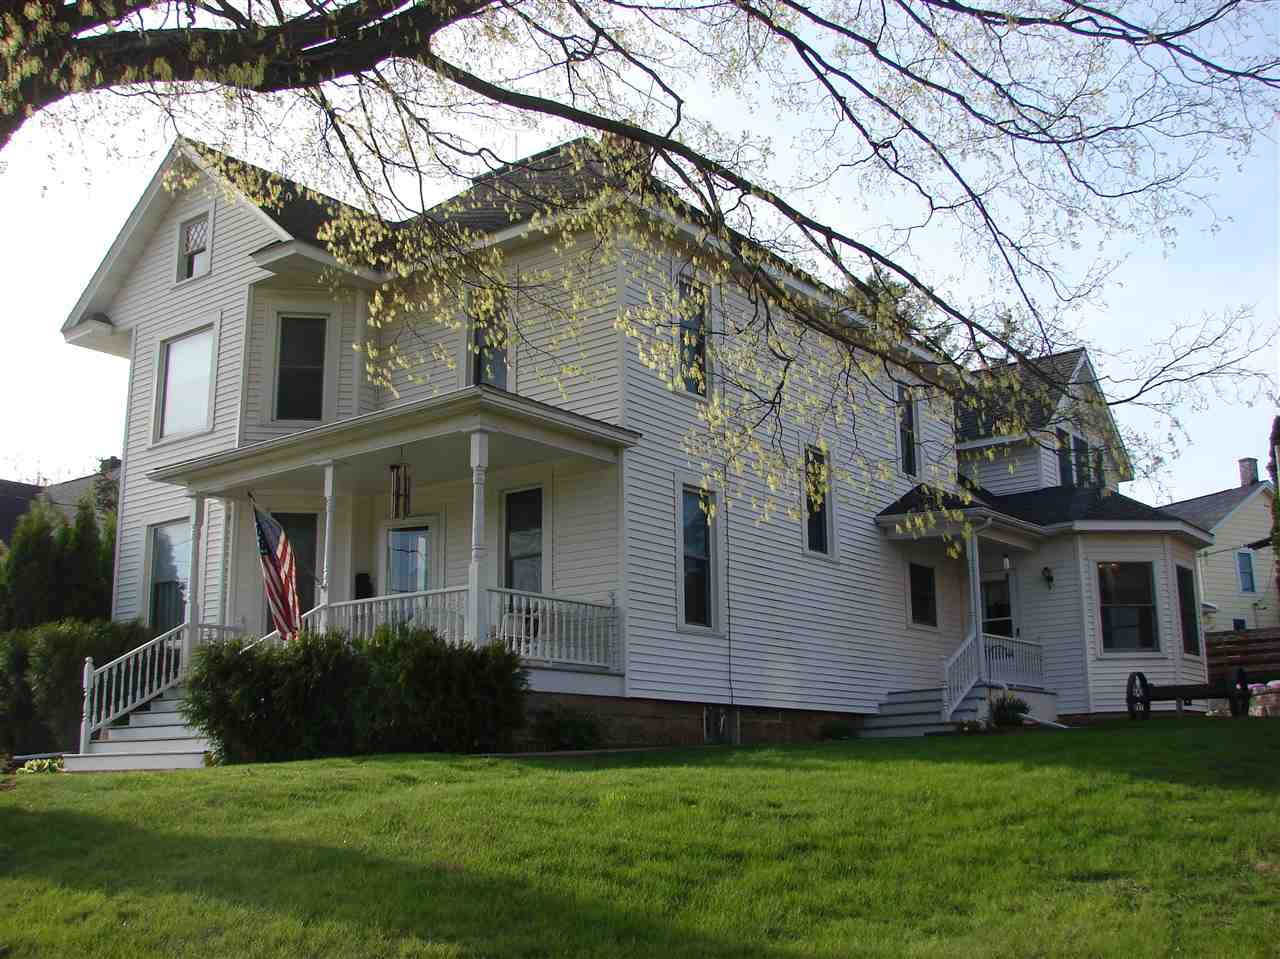 419 Doty St, Mineral Point, WI 53565